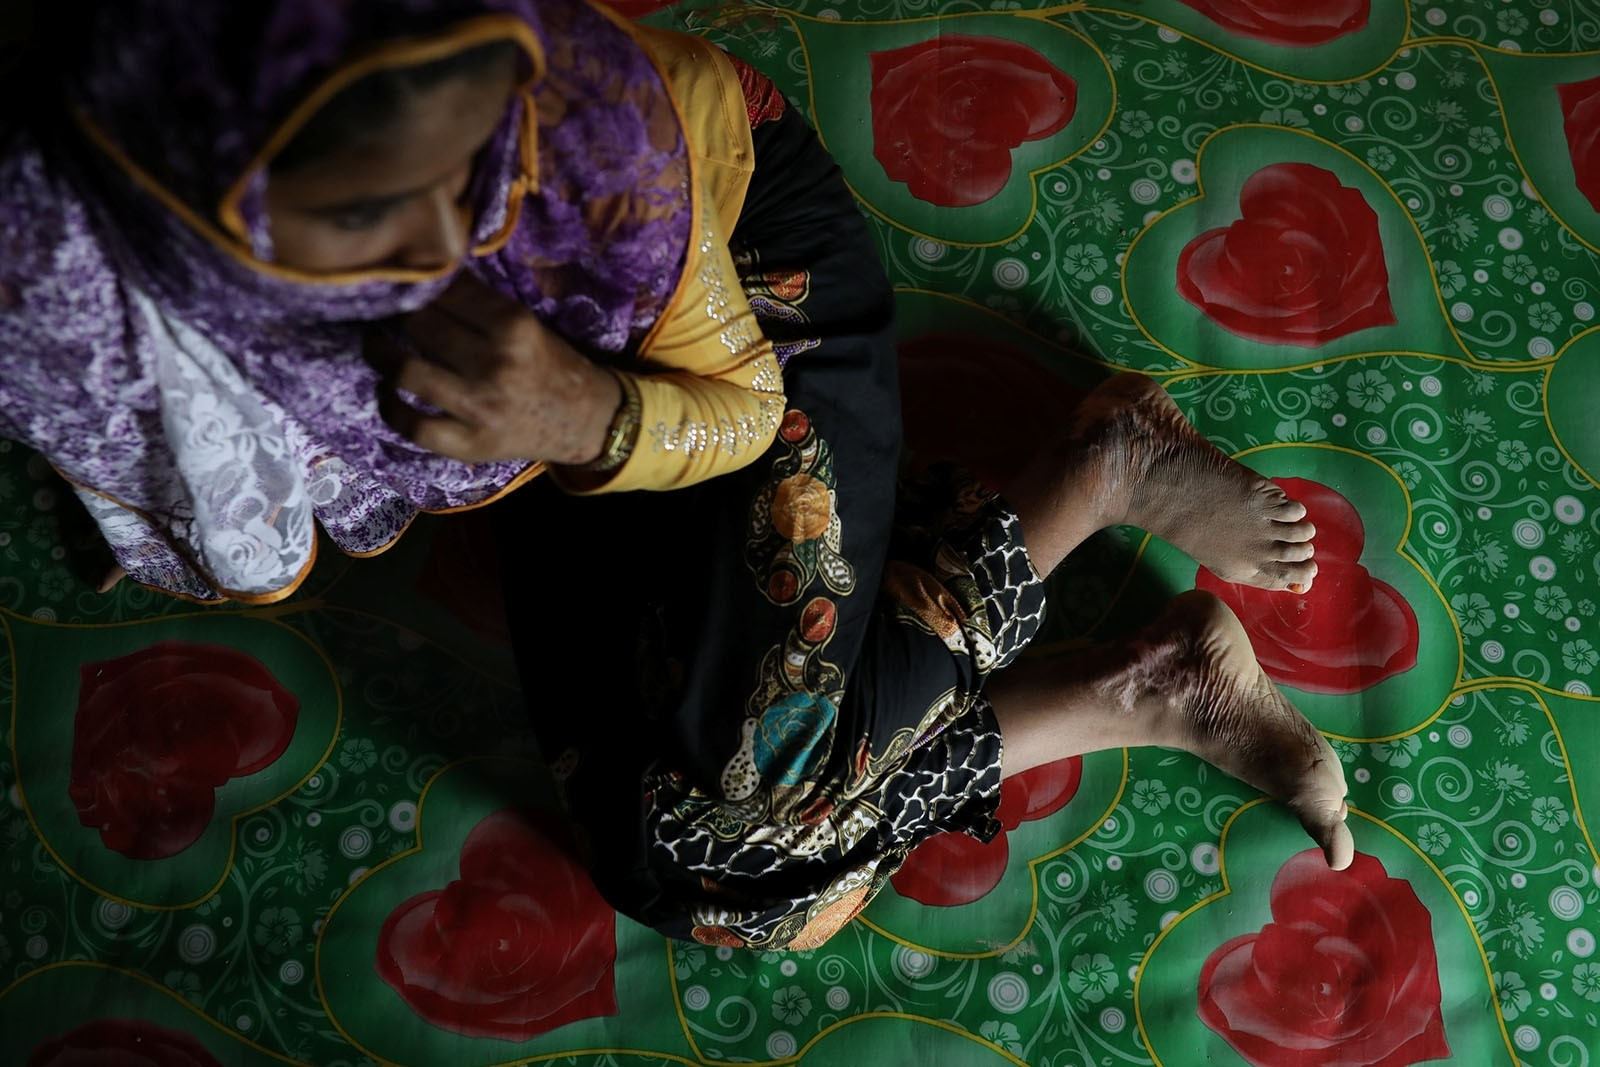 Begum, a Rohingya rape victim, shows her scars as she poses for a picture in Teknaf, Bangladesh, June 25, 2018. Picture taken June 25, 2018.